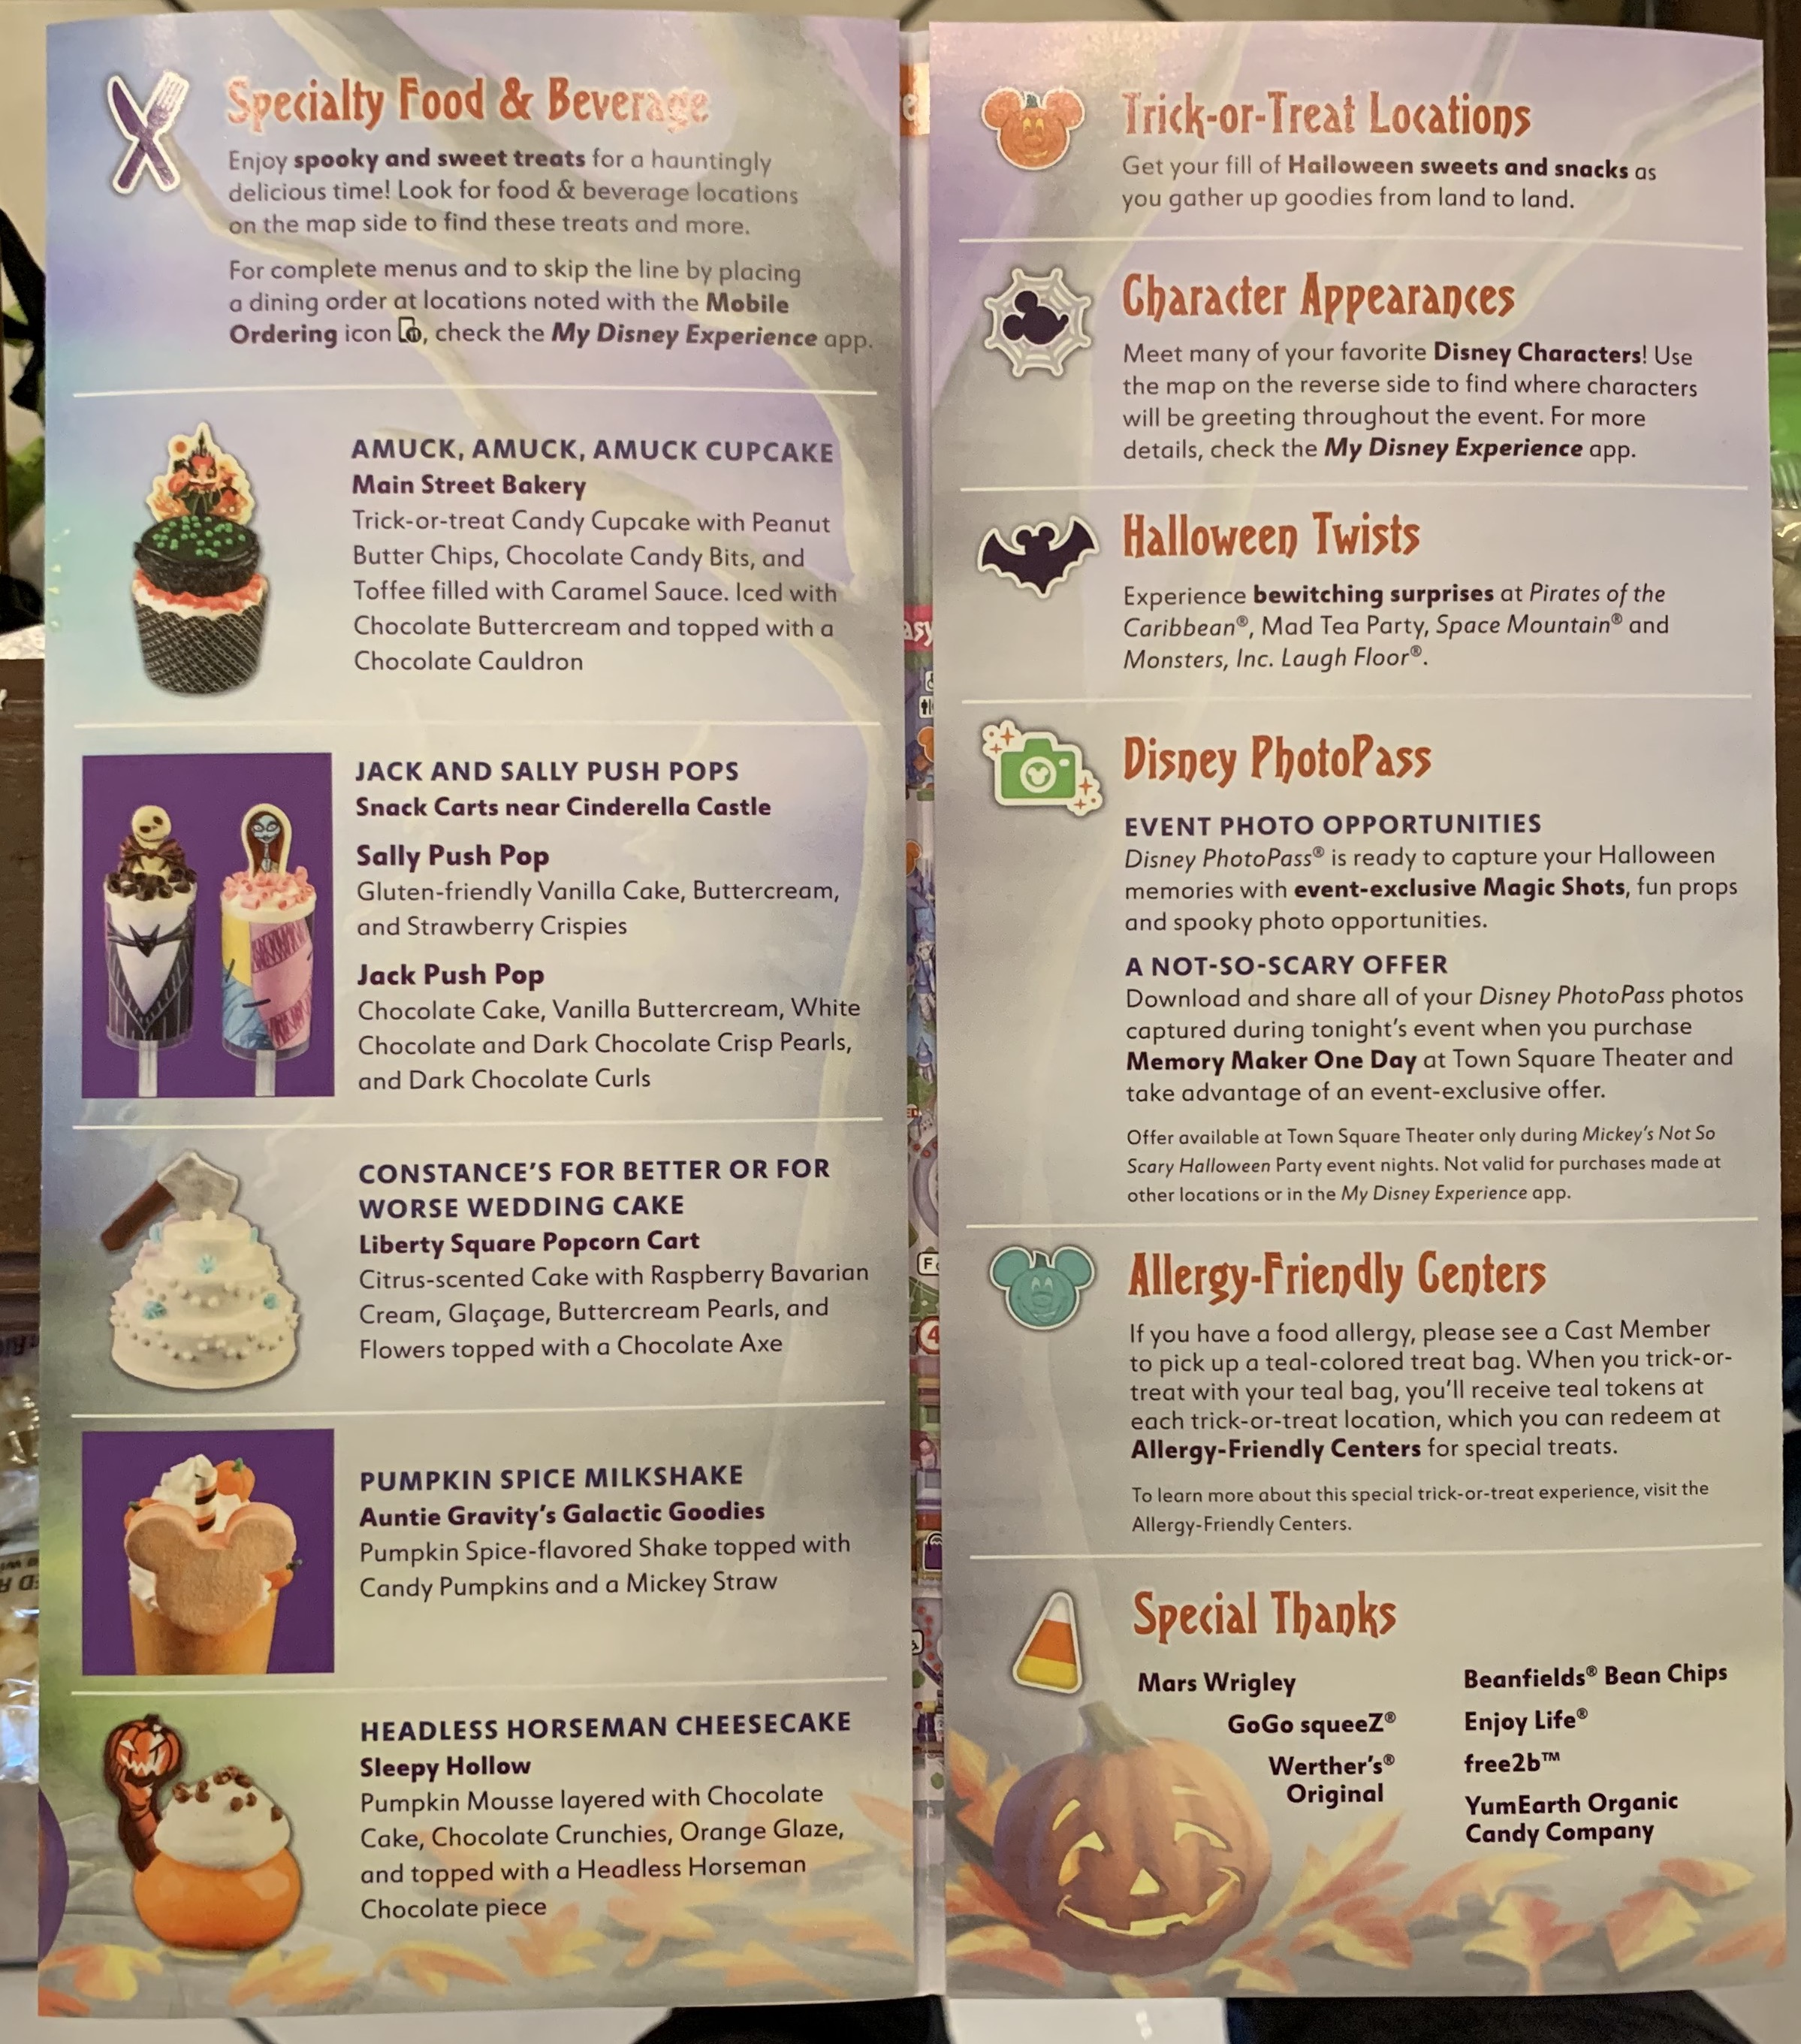 mickeys very merry halloween party guide map 4.jpeg